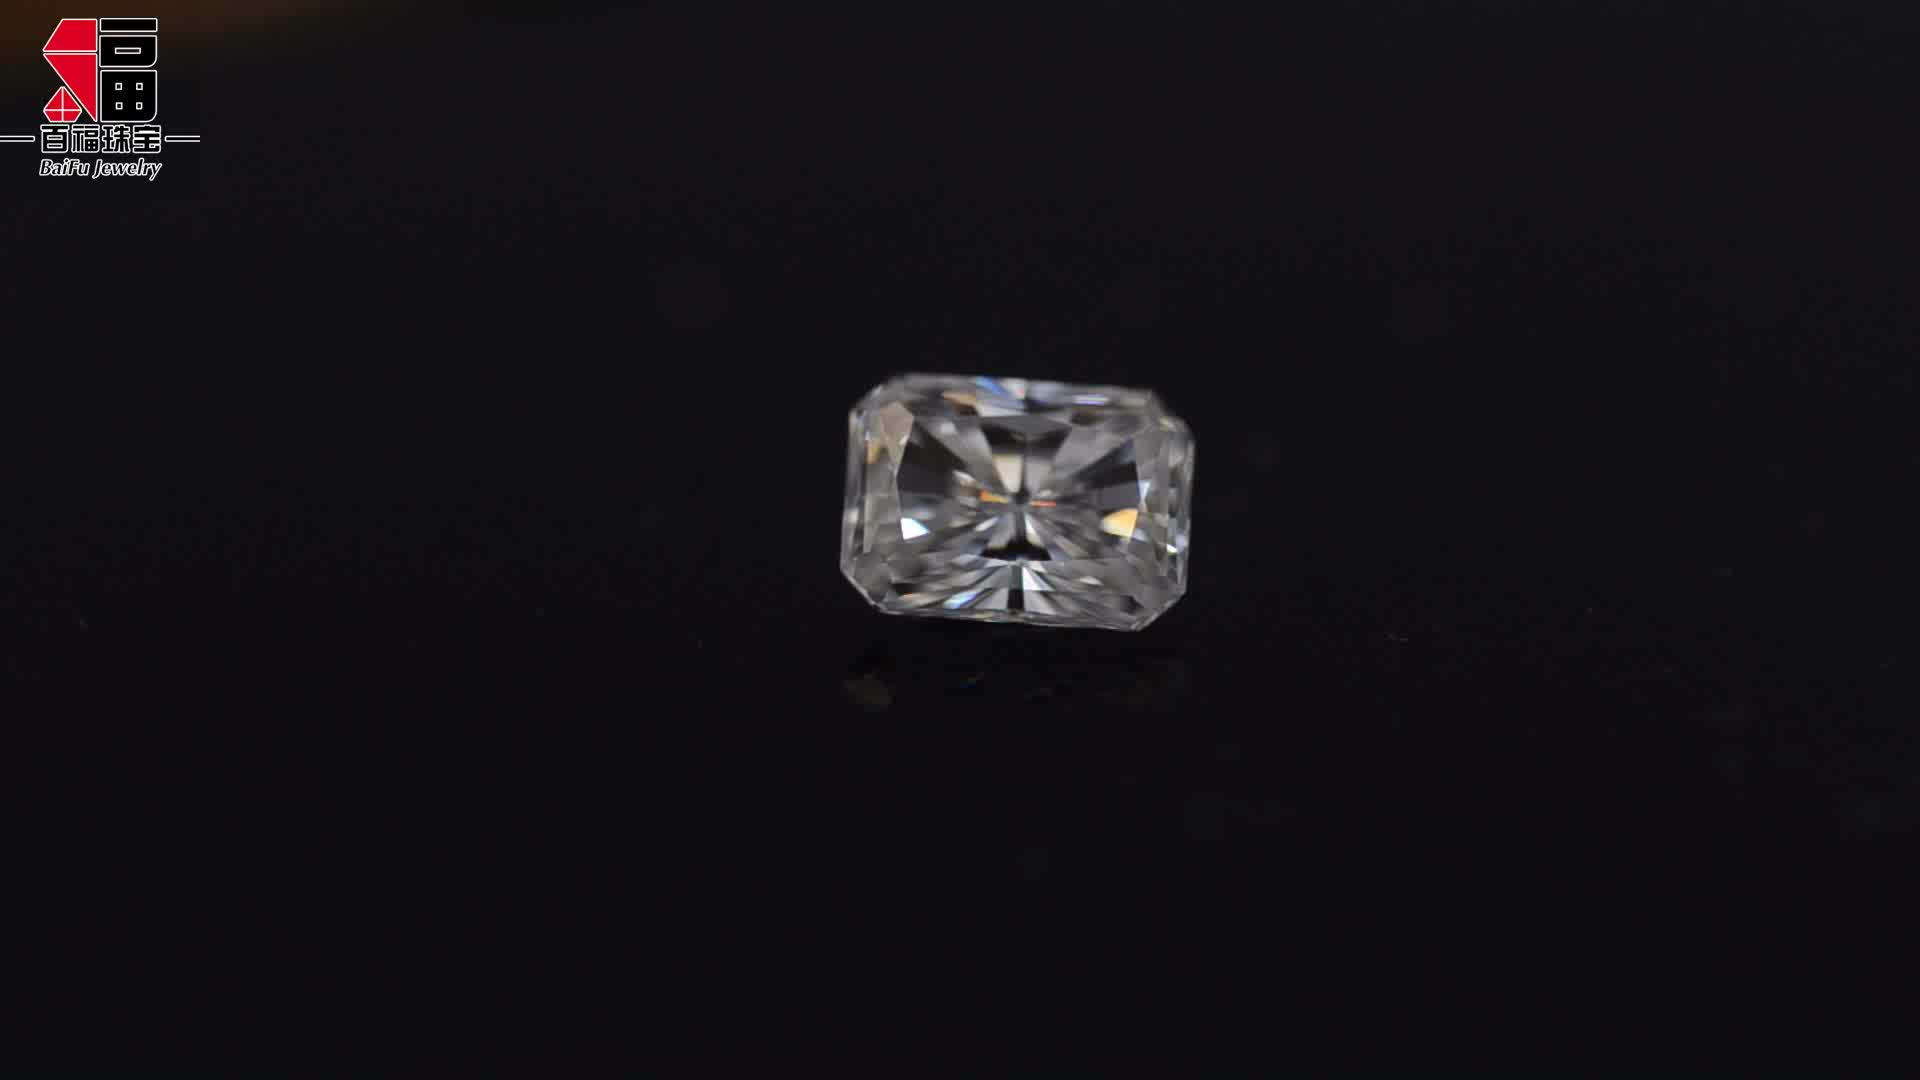 colvard f range jewelry one by e ca d color charles dp forever radiant def diamond amazon cut moissanite